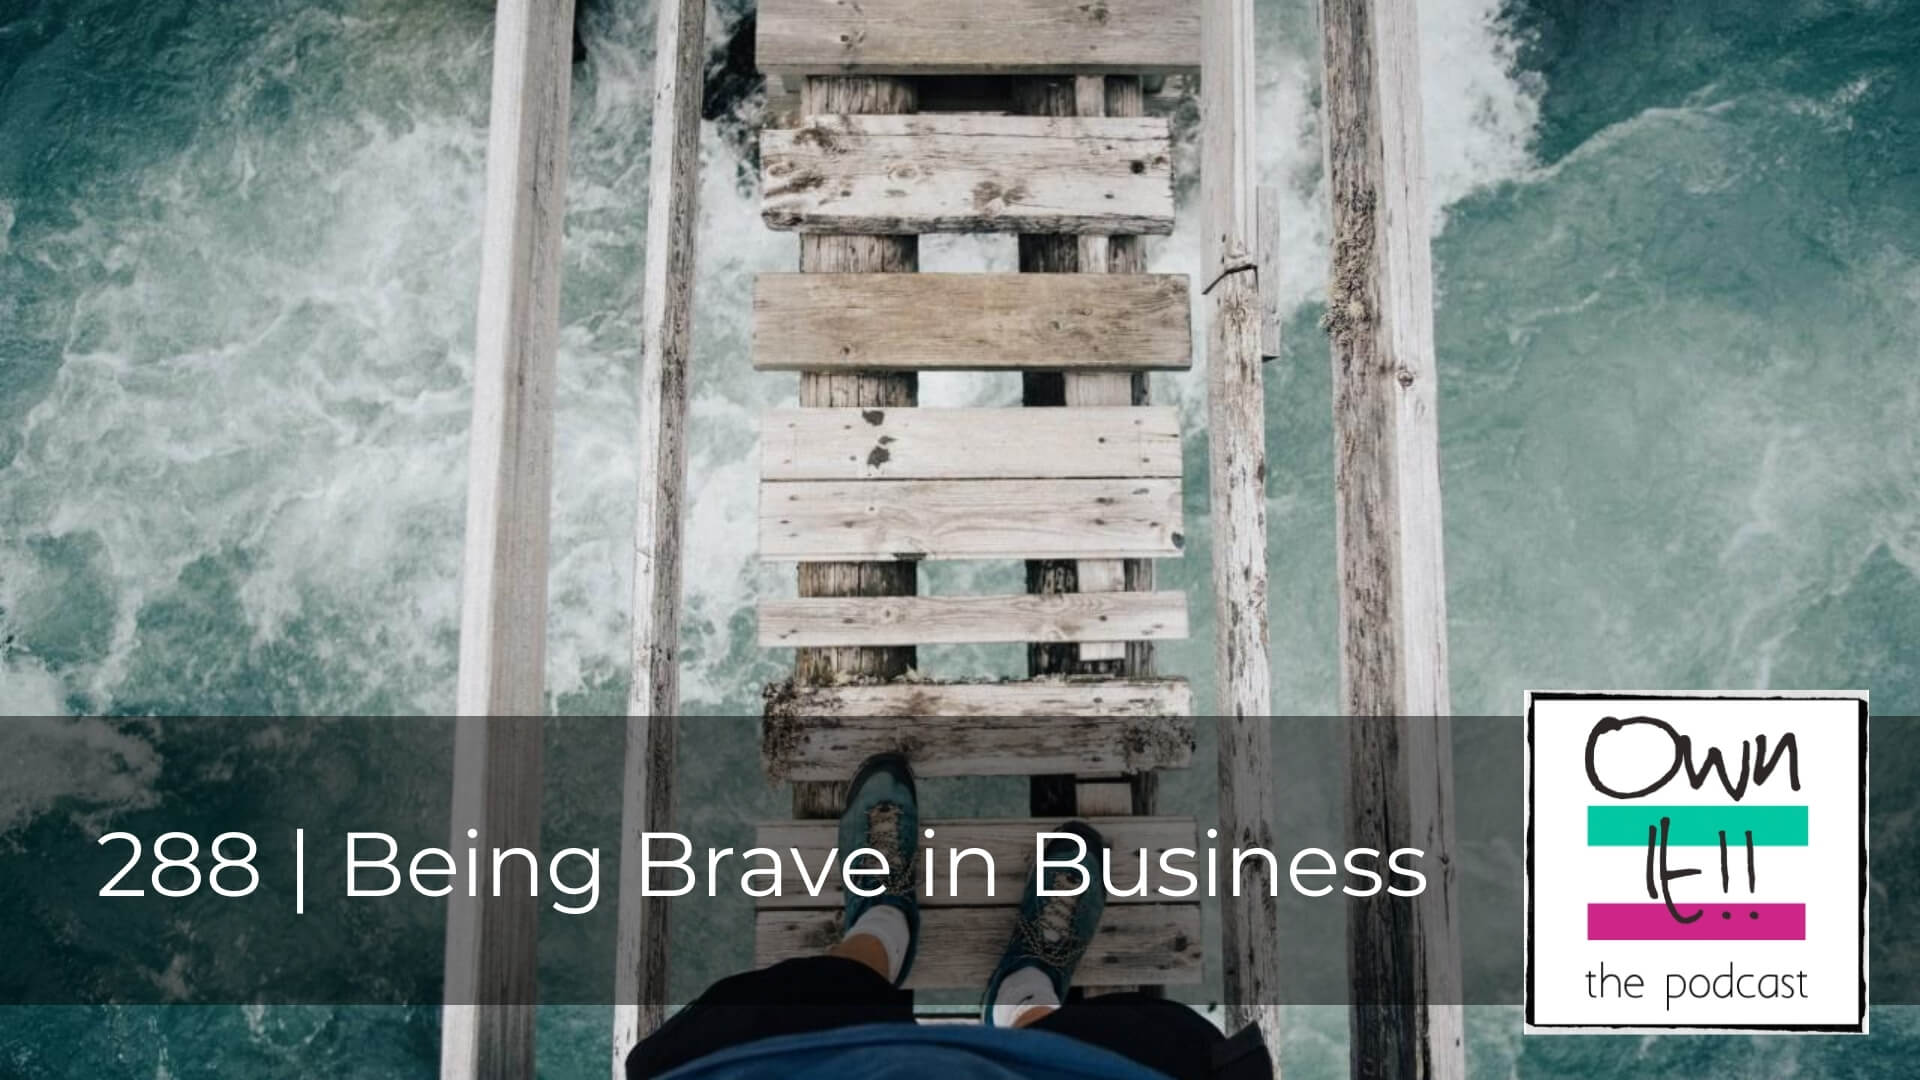 Own It! 288 | Being Brave in Business